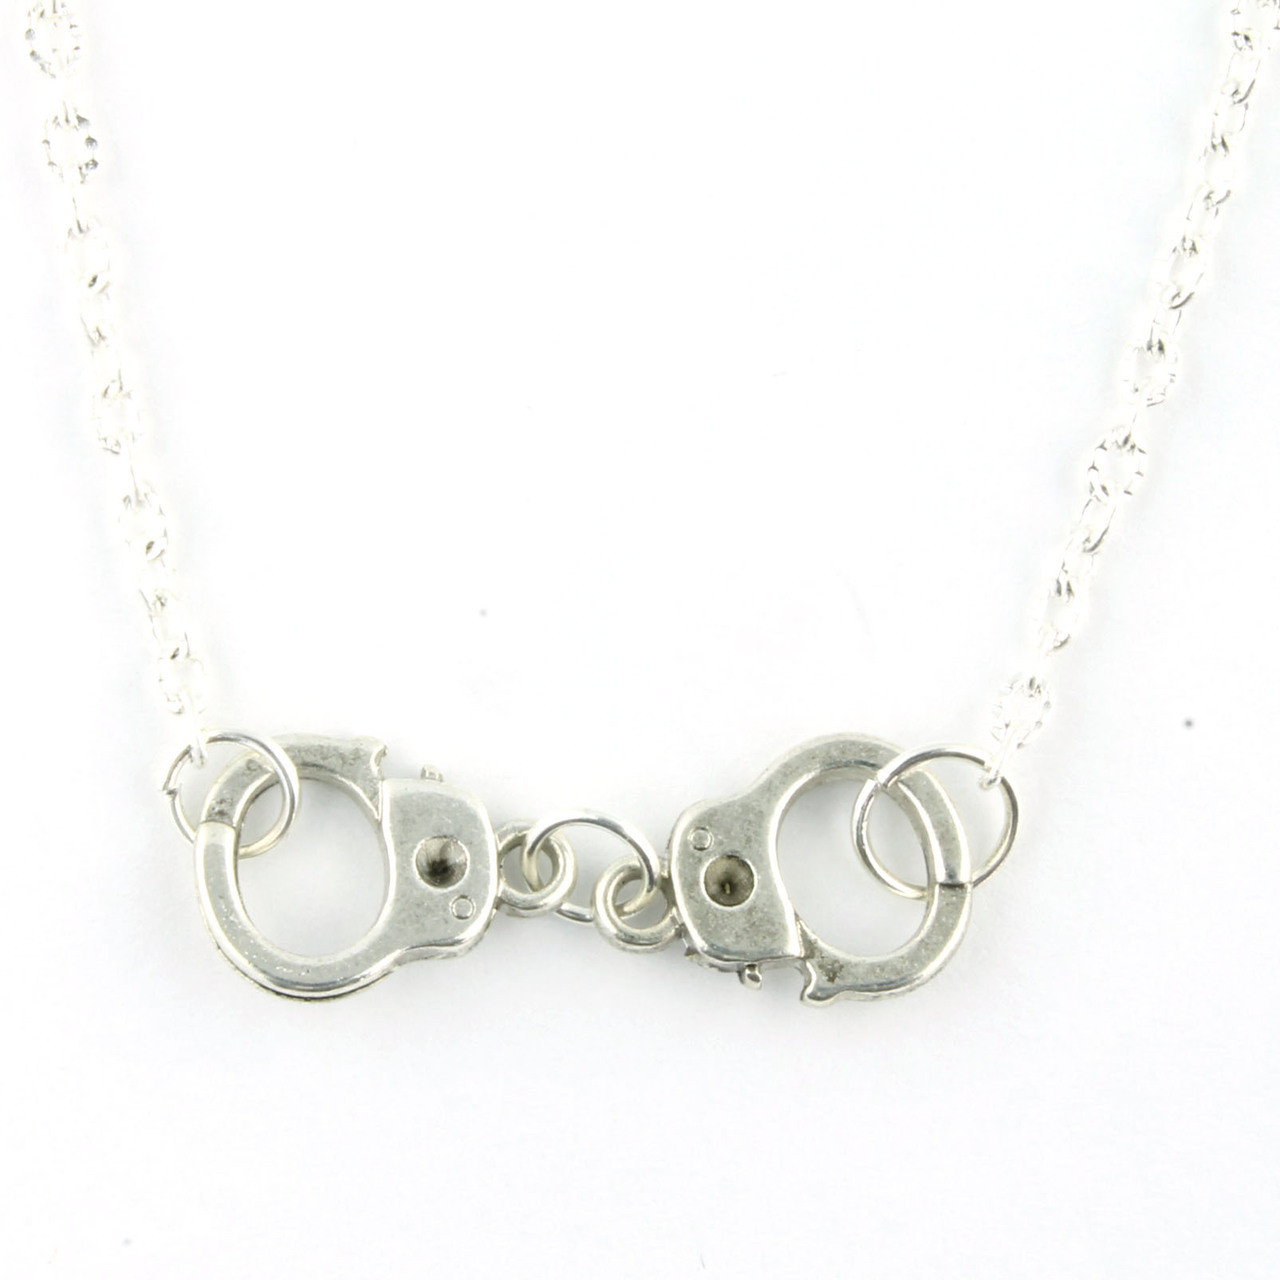 Funky Handcuffs Necklace